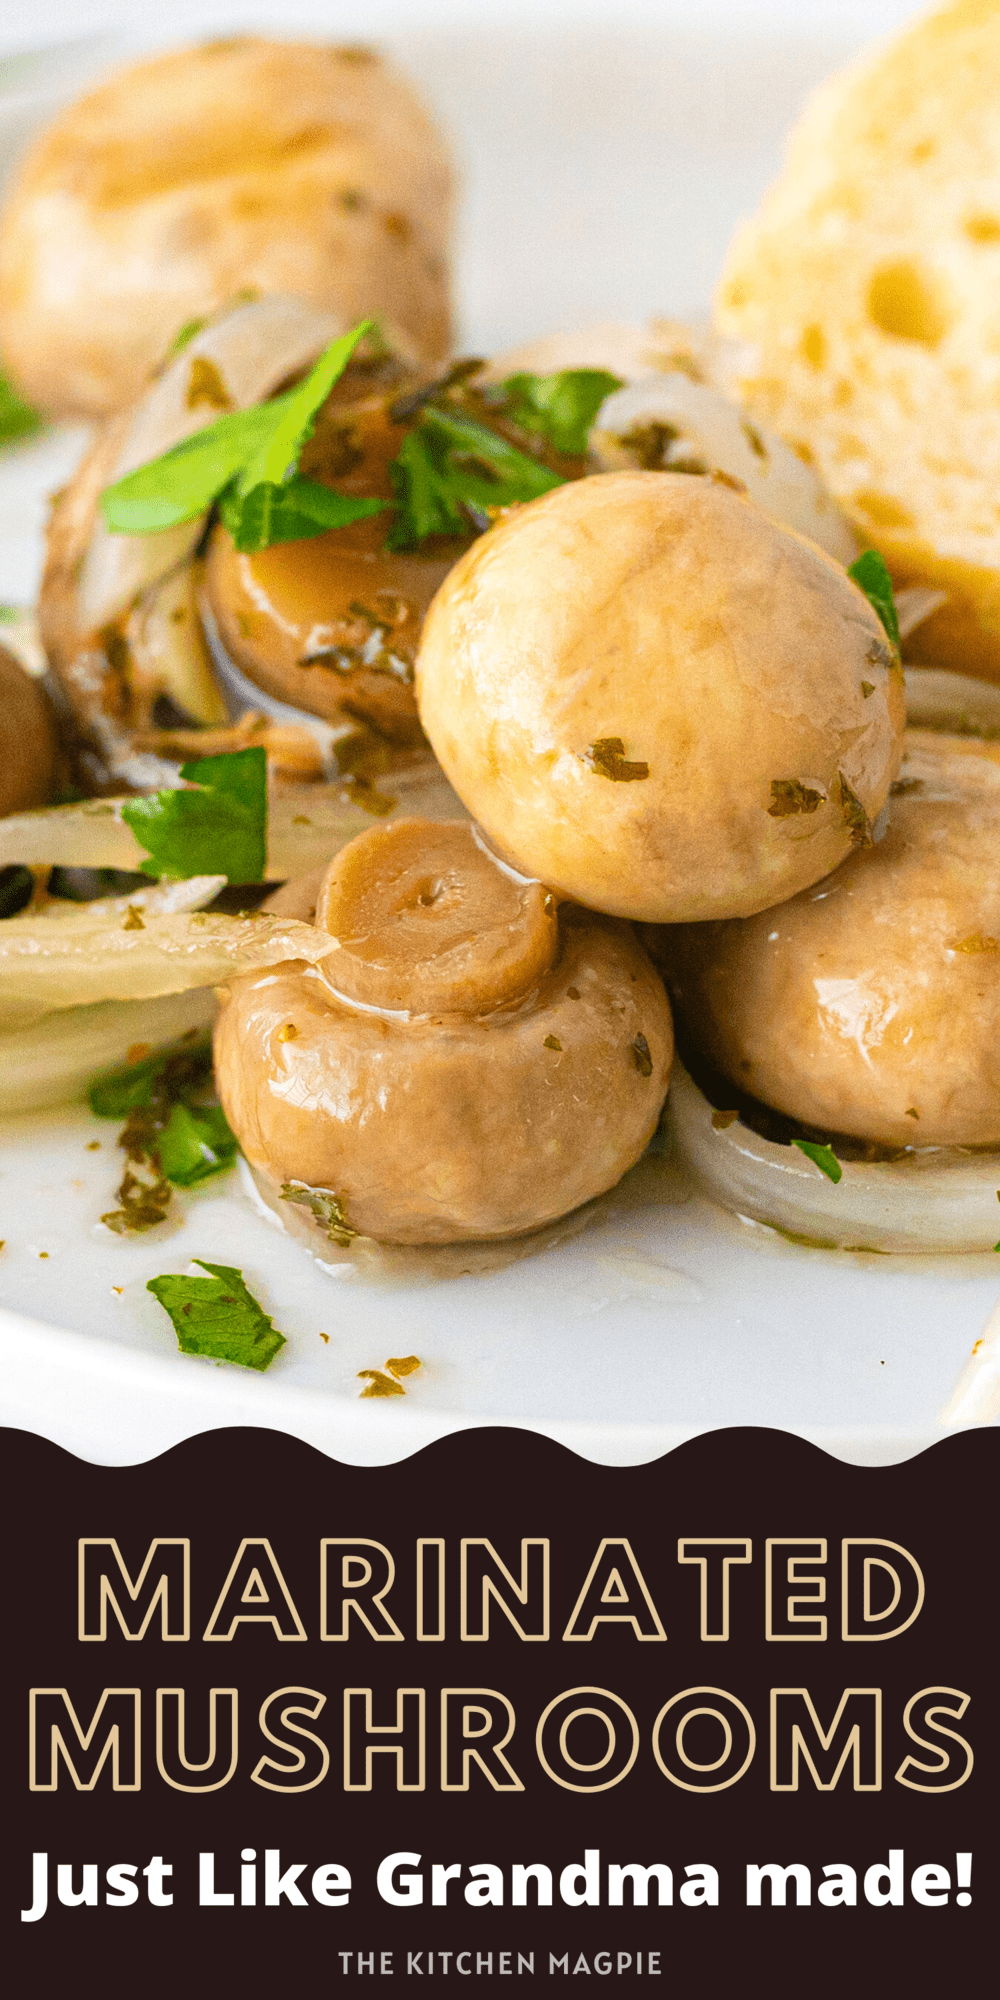 Marinated mushrooms have always been a hit as an appetizer! This recipe uses fresh mushrooms but if you want to go full retro, used drained canned mushrooms, just like Grandma did!